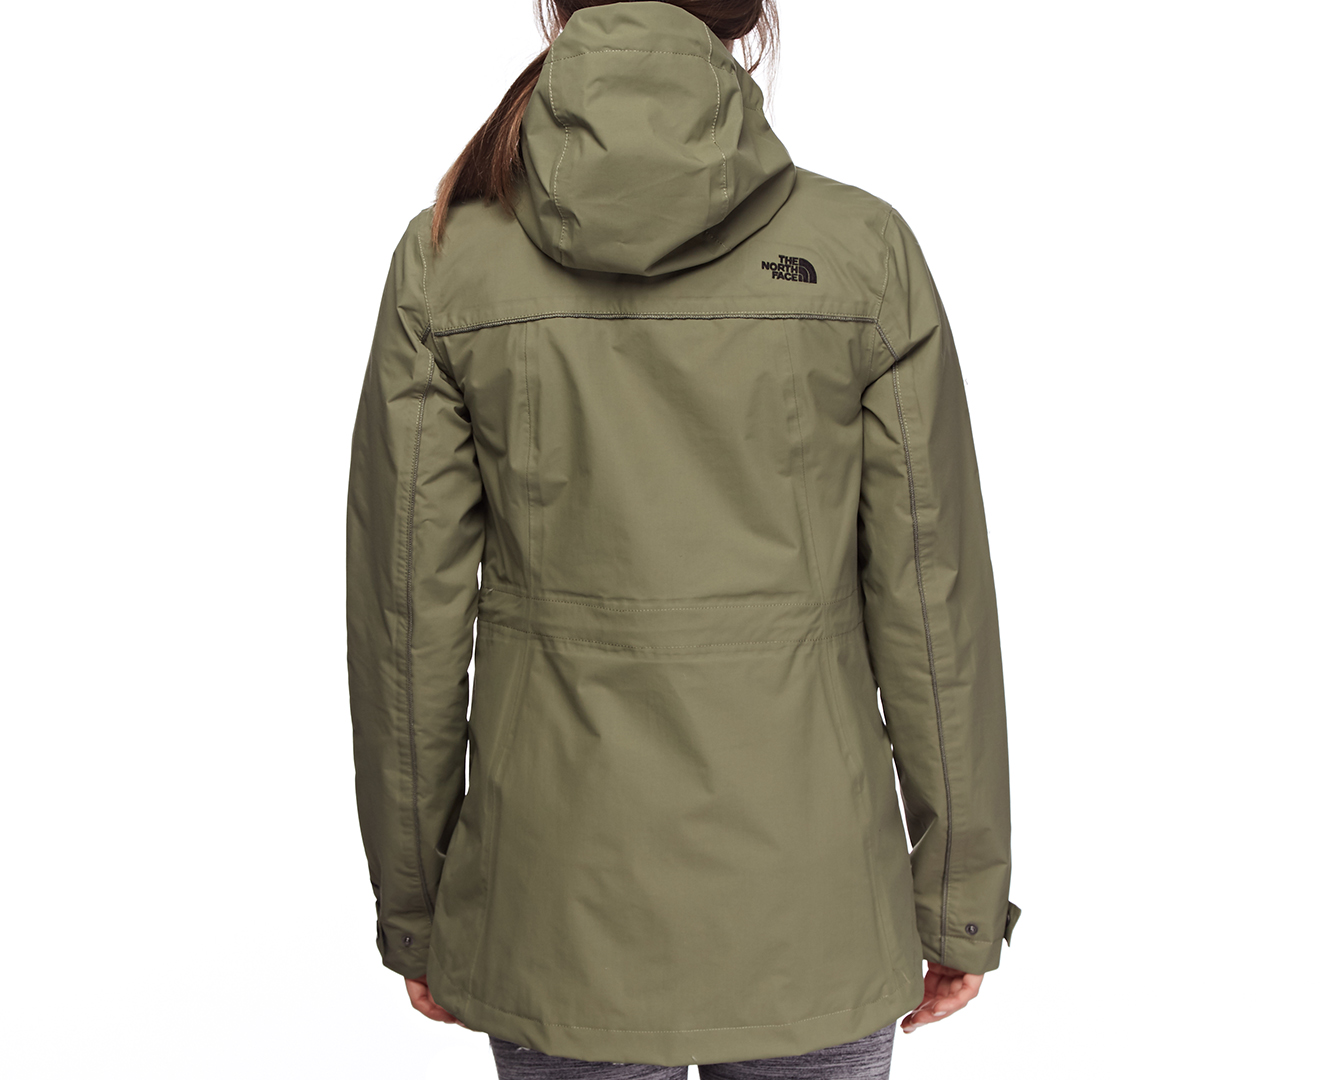 7c50a81d05fc The North Face Women s Ditmas Jacket - Deep Lichen Green